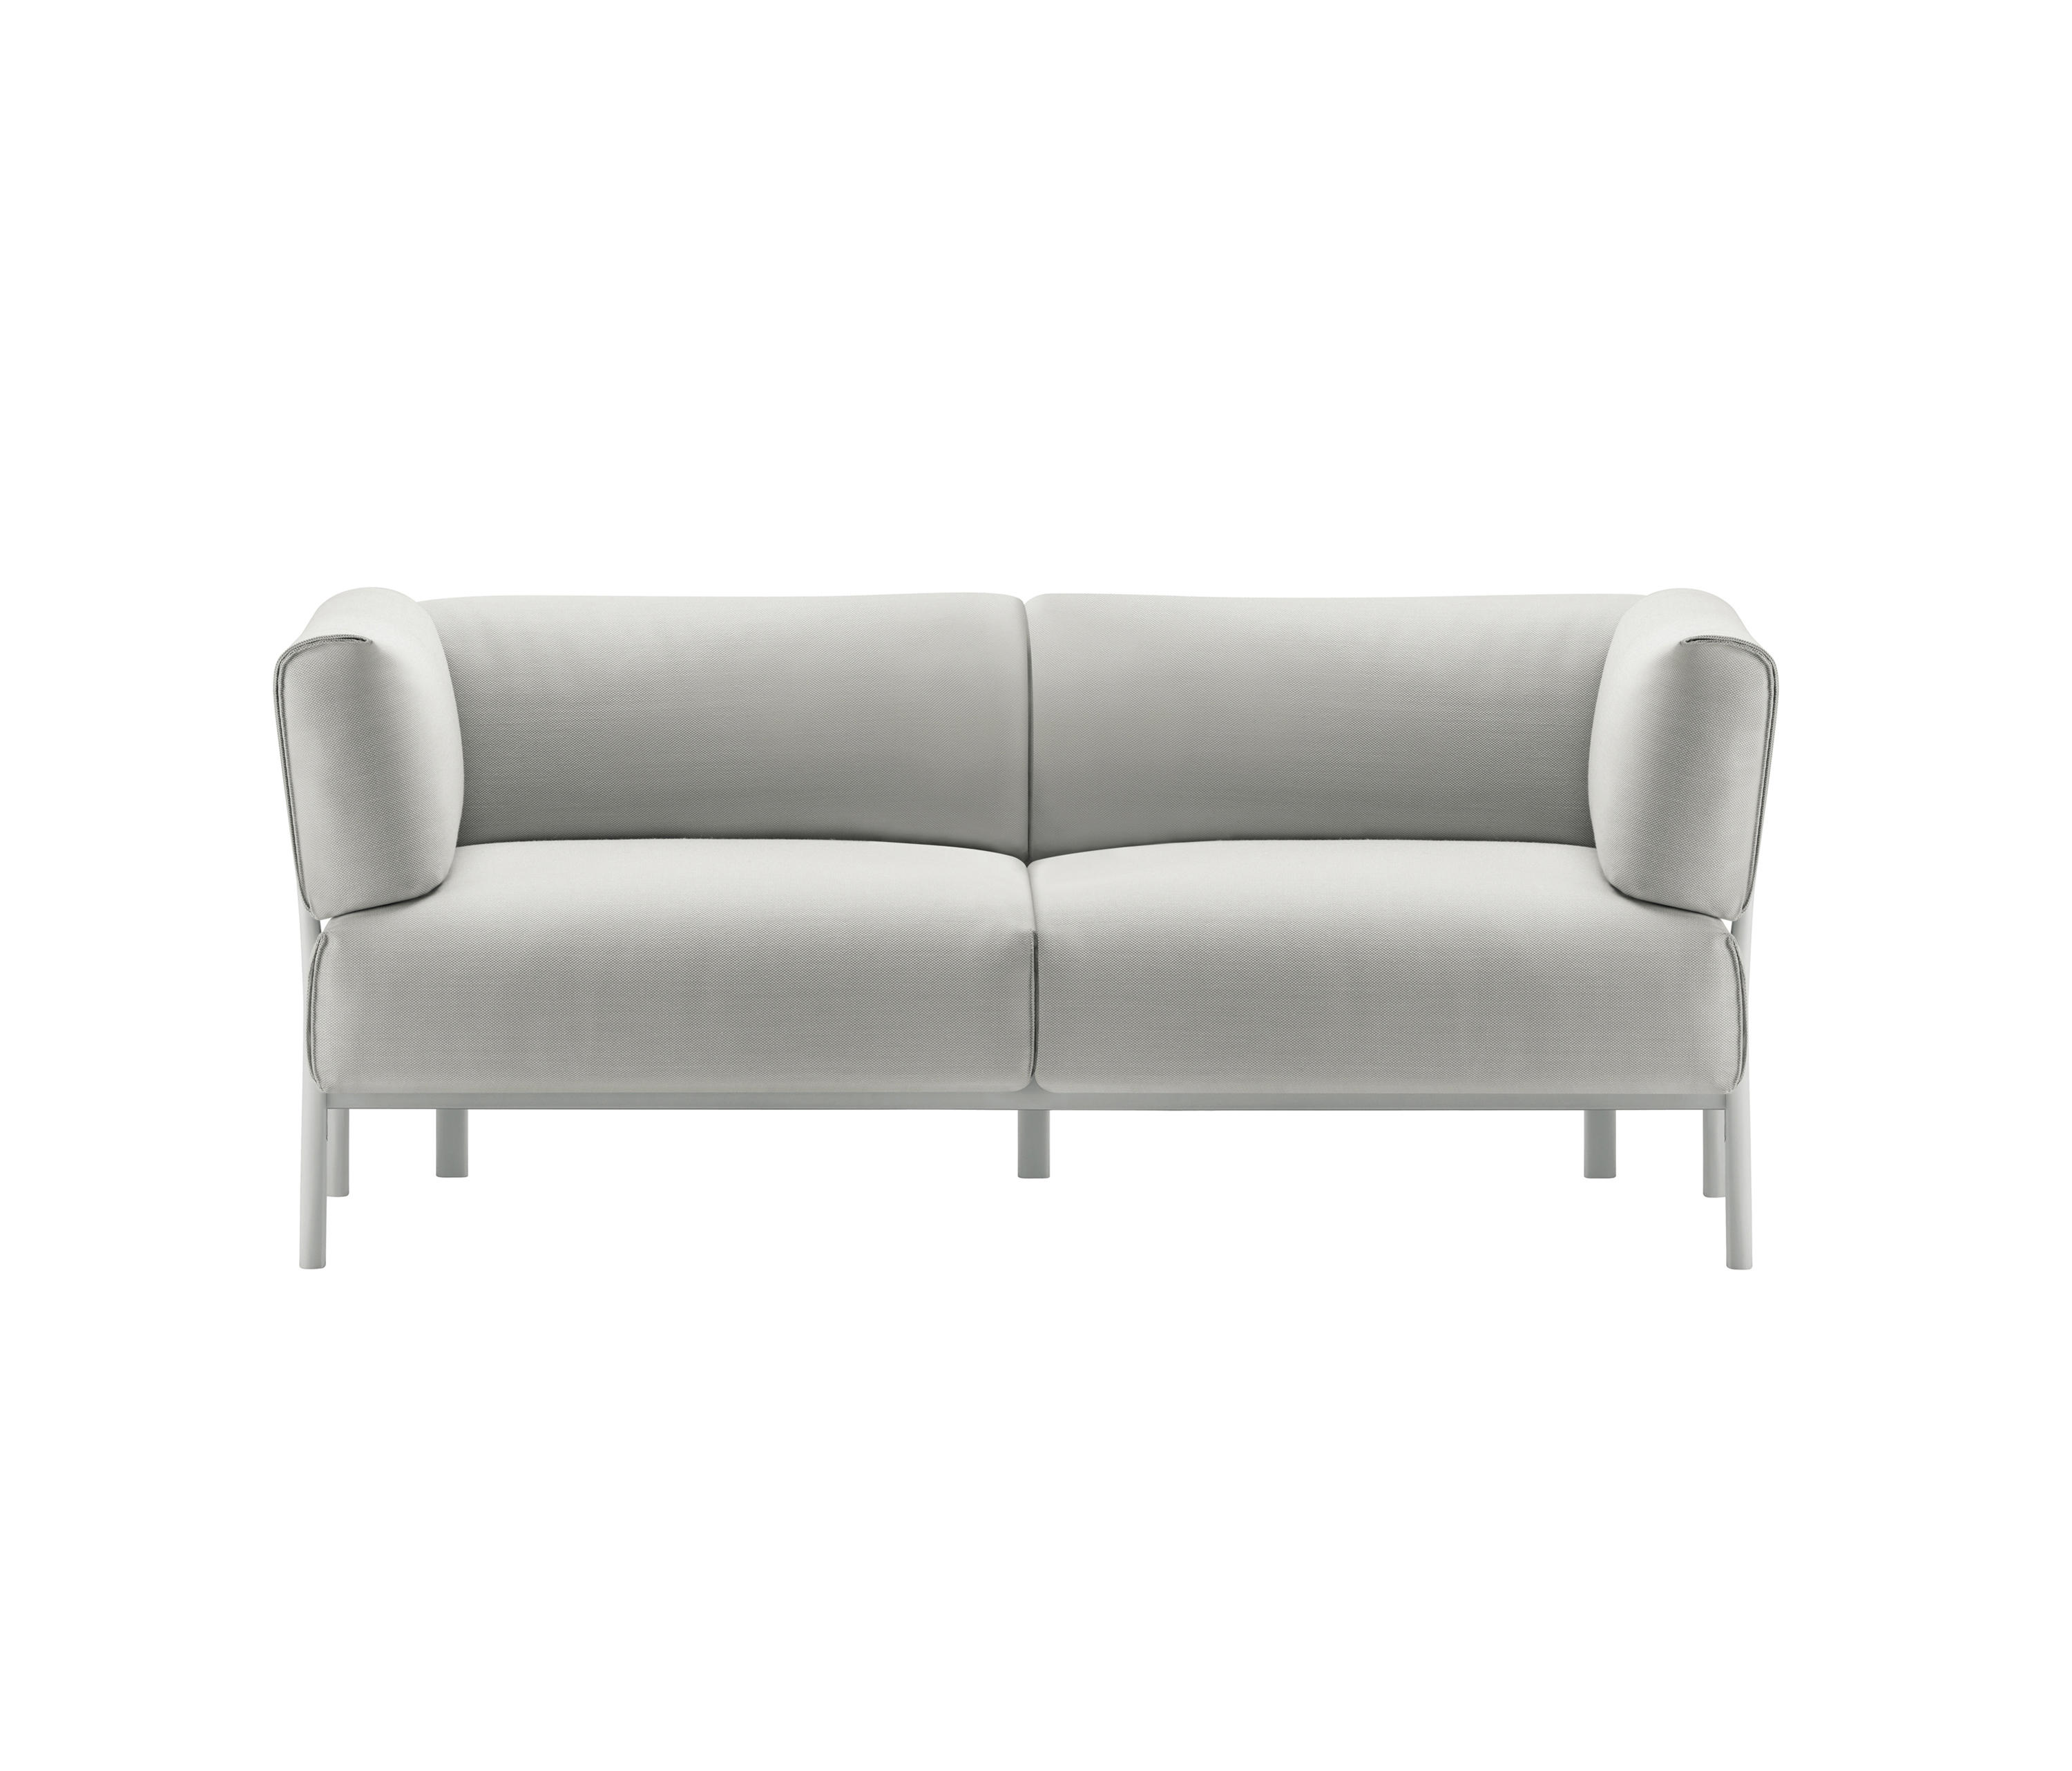 Fantastic Eleven 2 Seater Sofa 861 Sofas Von Alias Architonic Ocoug Best Dining Table And Chair Ideas Images Ocougorg